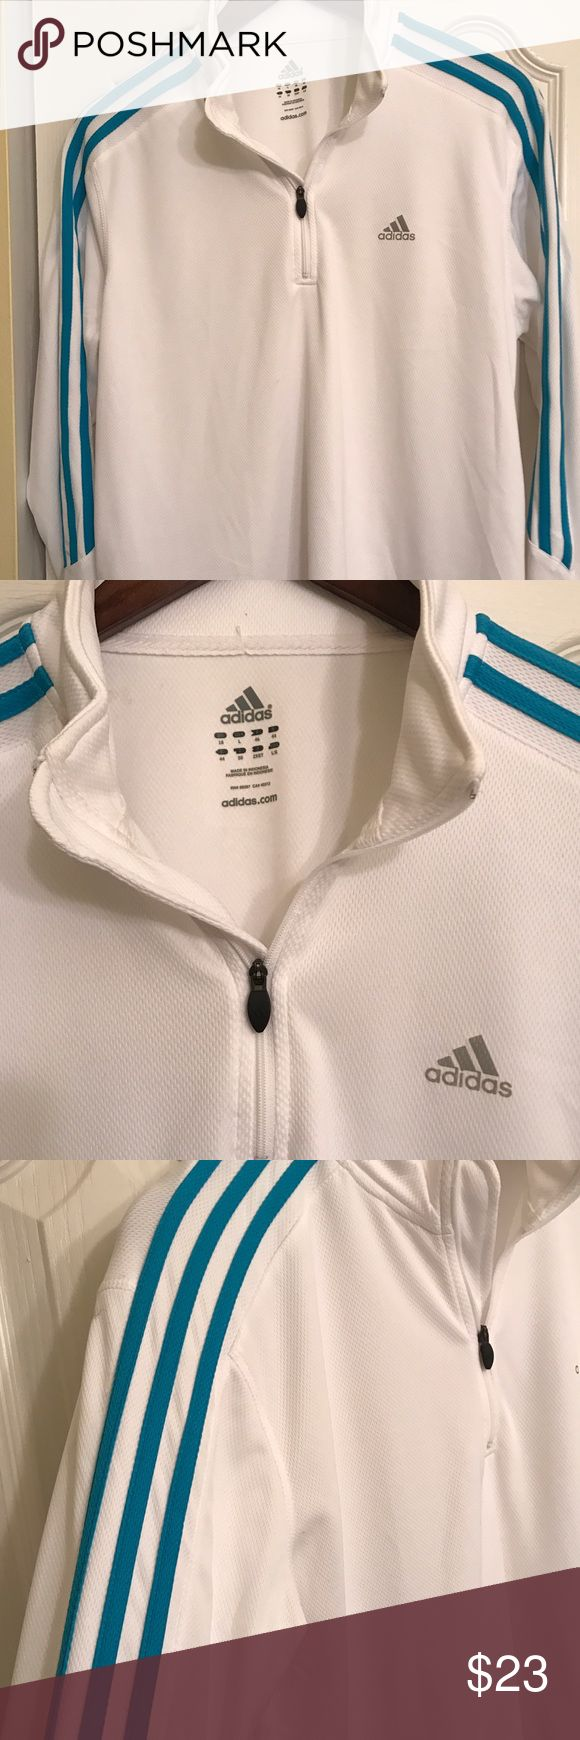 ADIDAS Climalite White & Aqua Half Zip Shirt This is all of the comfort and style you can expect from Adidas! Only worn a couple of times, there's a lot of life left in this shirt! The famous Adidas striping is a pretty aqua which really pops on this pristine white shirt. This shirt won't be around for long...! Adidas Tops Sweatshirts & Hoodies